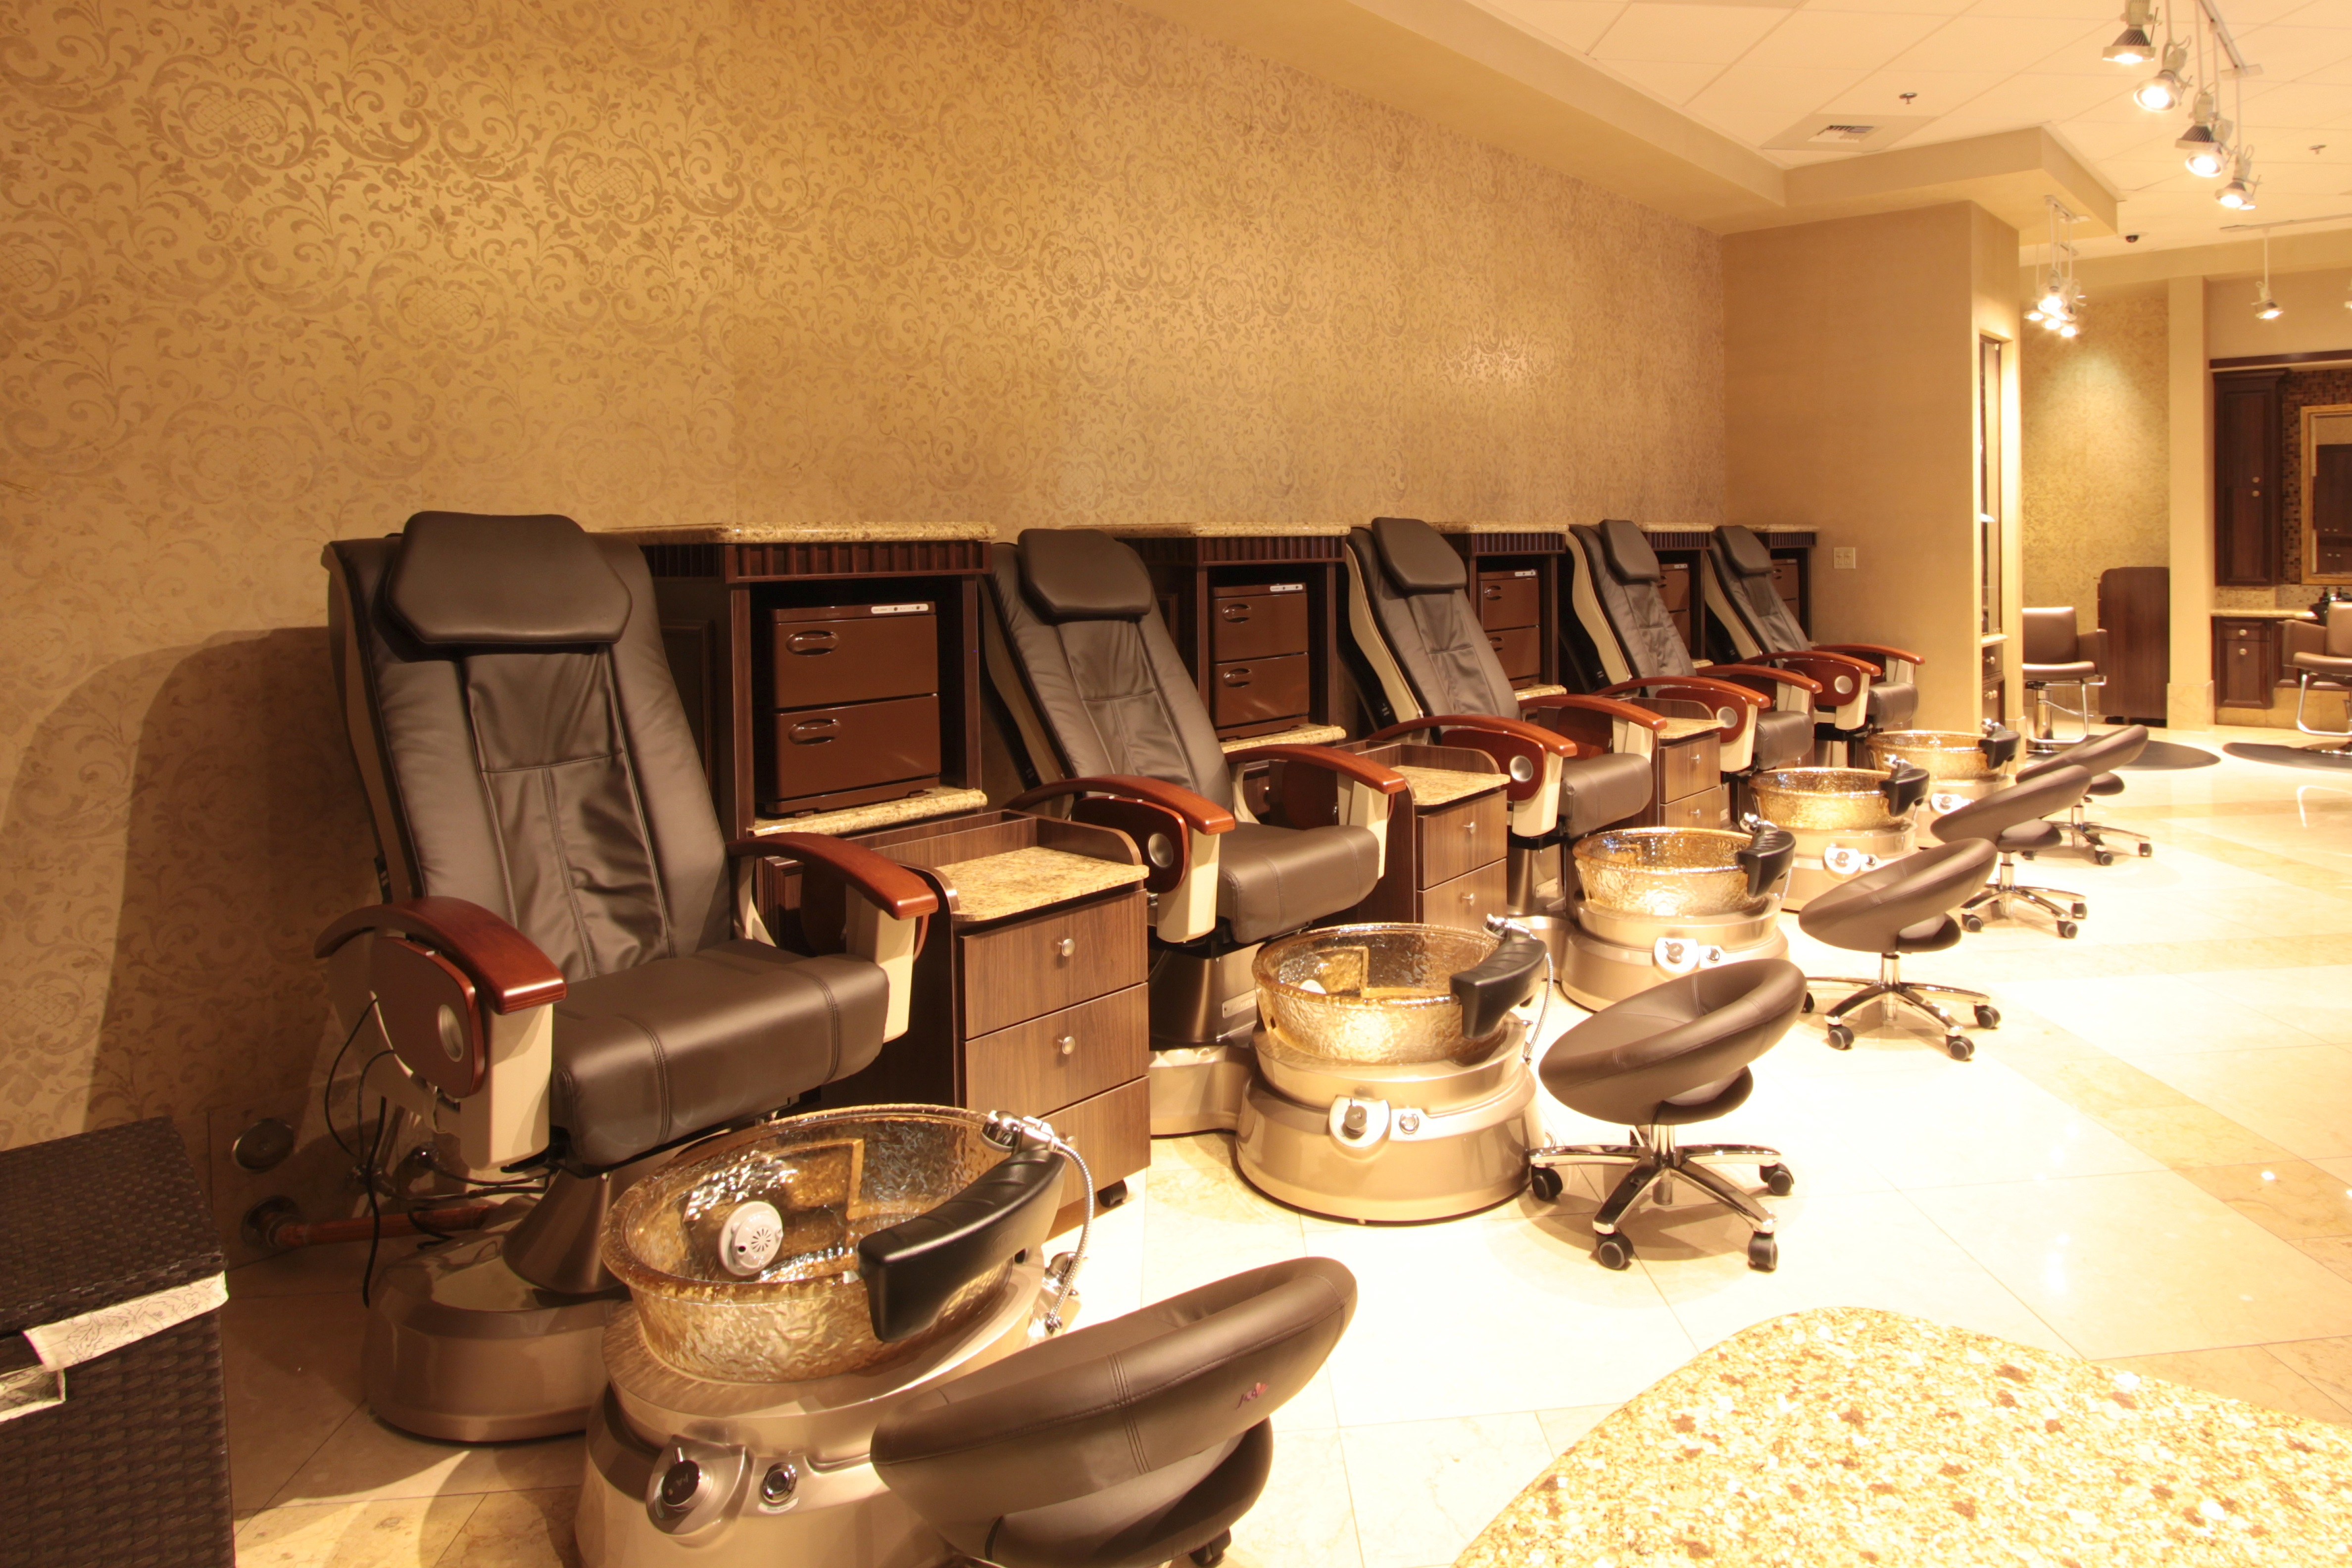 the luxurious pedicure massage chairs at costa del sur spa and salon